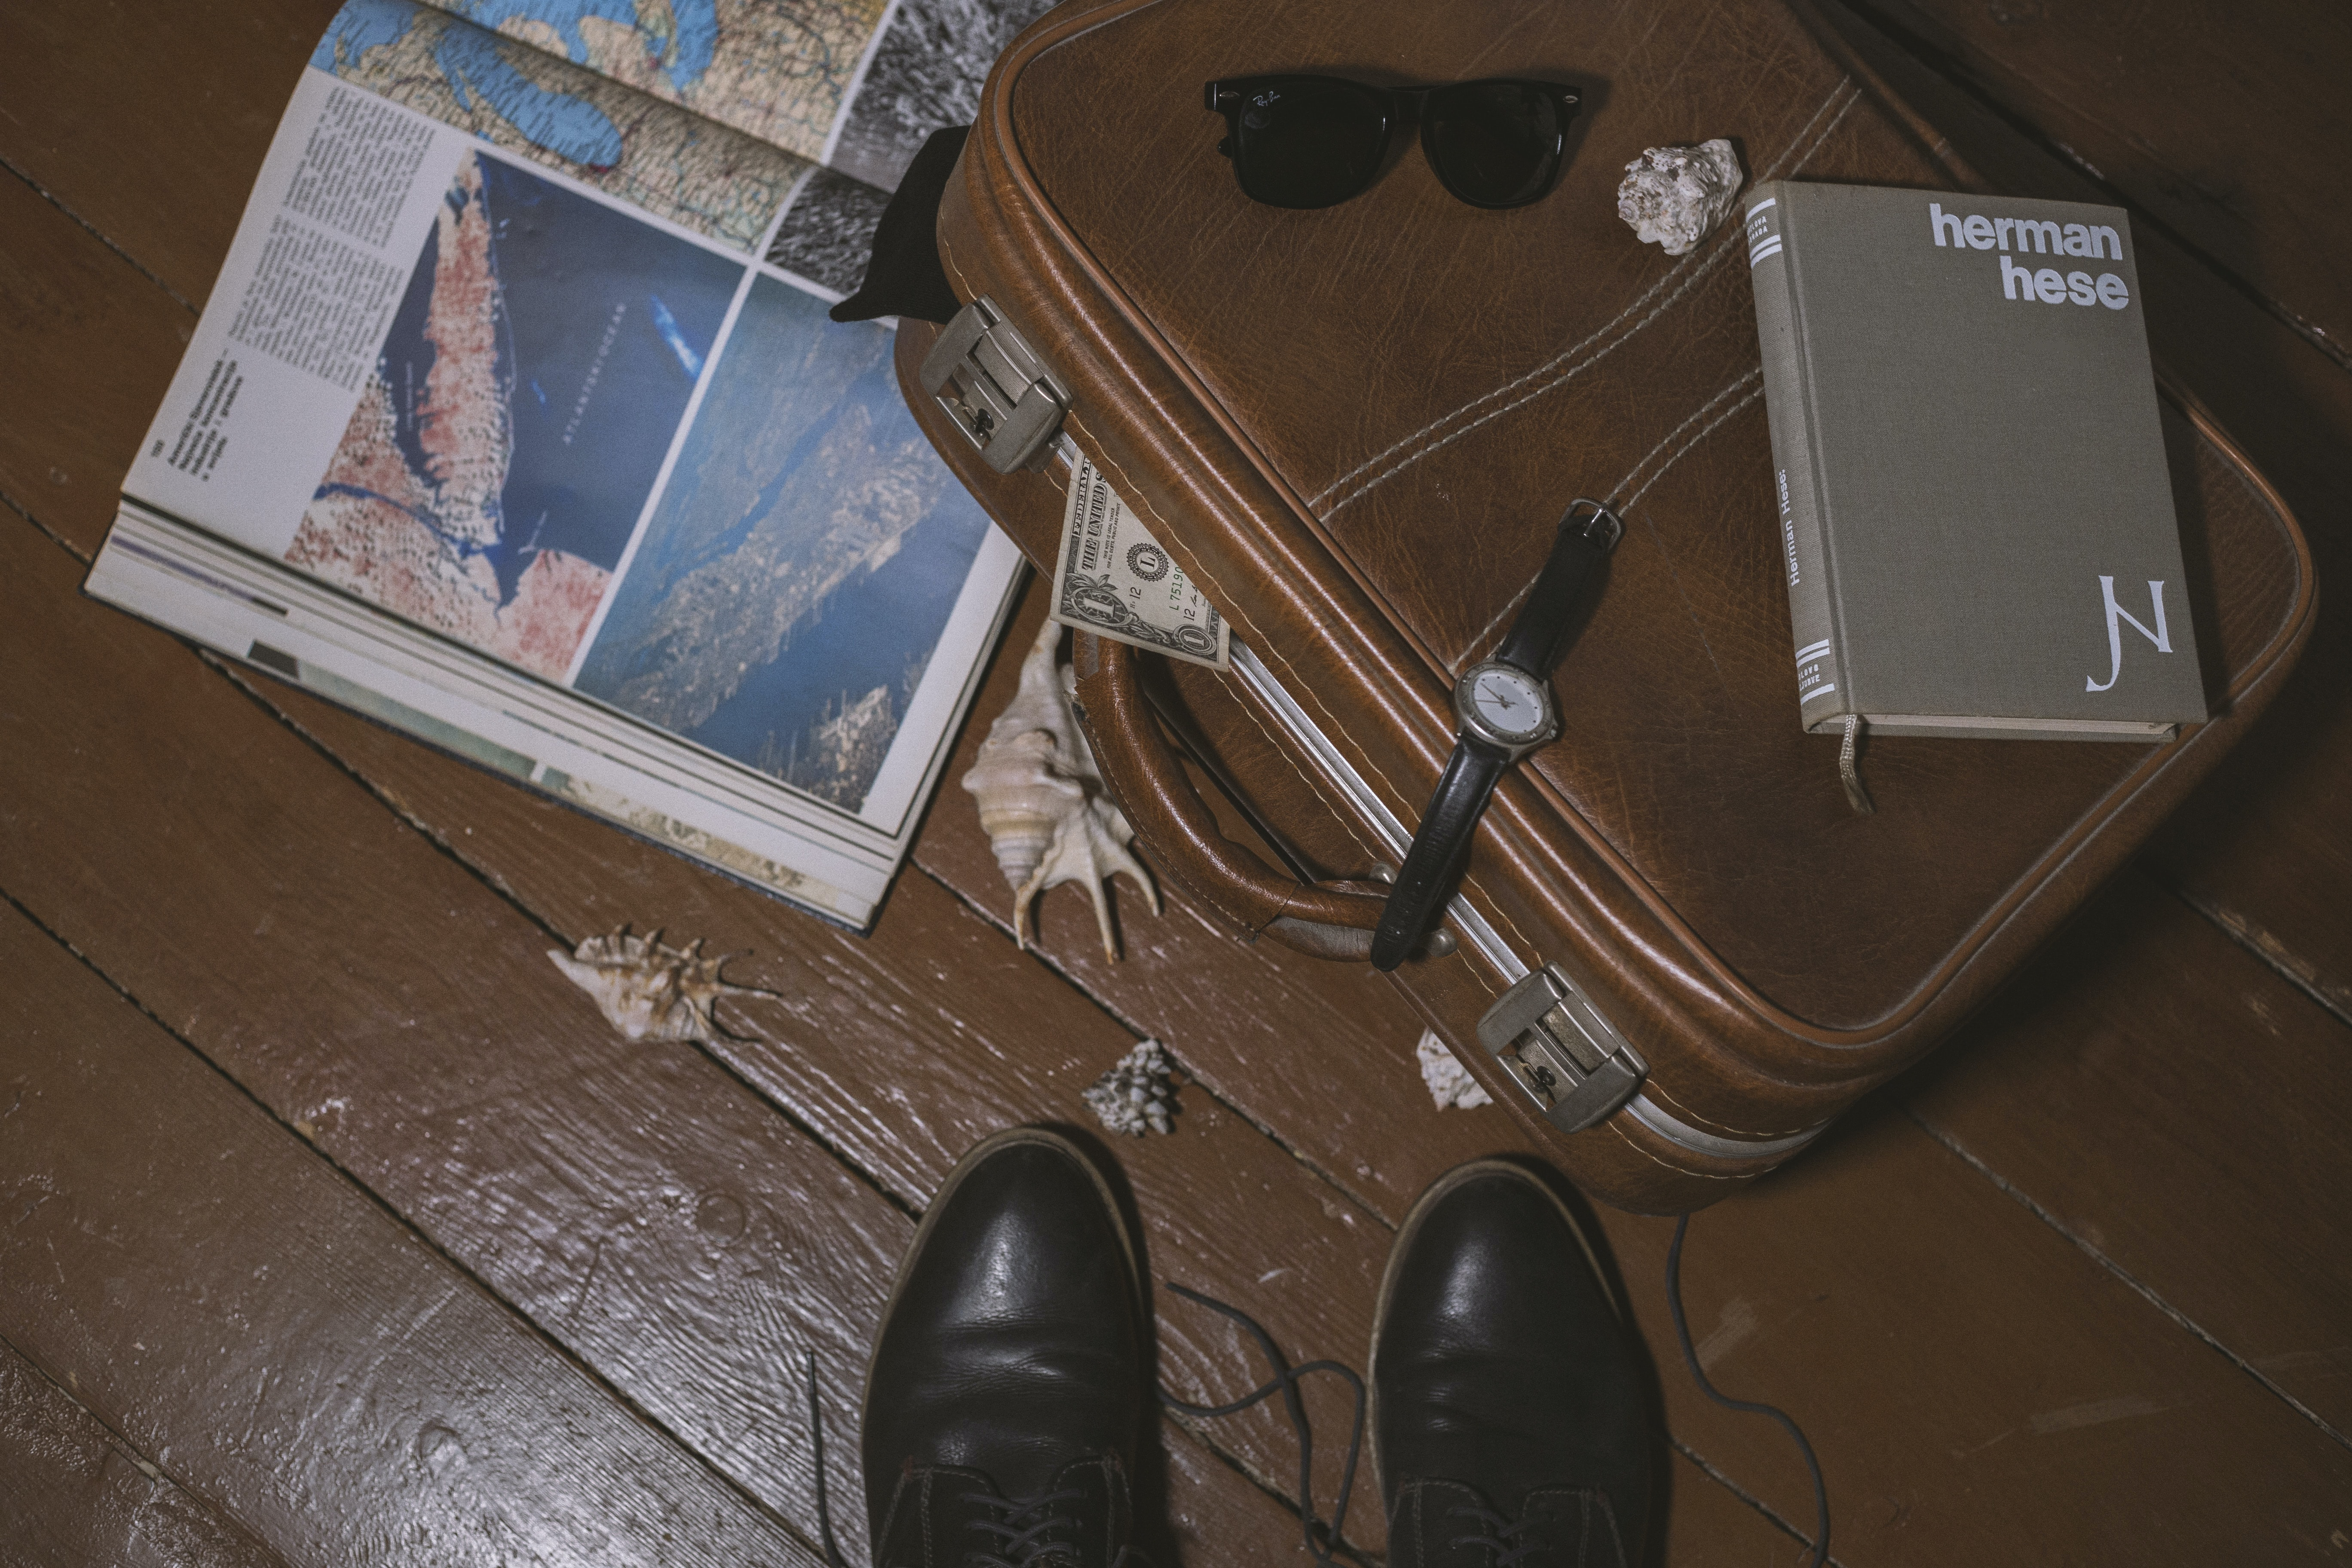 An overhead view of a person's shoes next to a leather suitcase with a book on it and a tourist guide under it